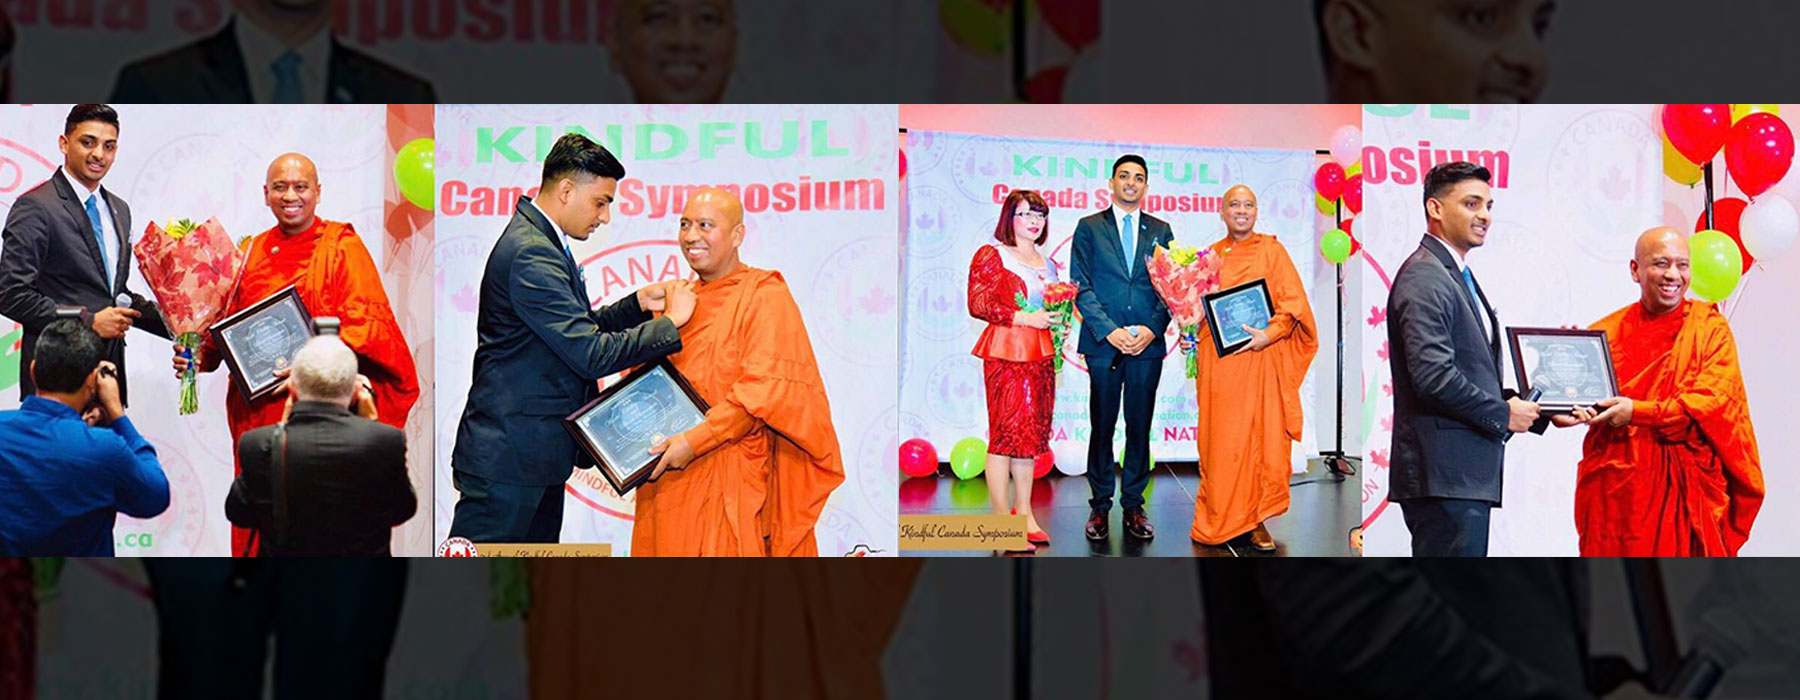 Bhante Saranapala, the founder & president of Canada: A Minsful and Kind Nation, has been honoured and appointed as the UN Civility Ambassador by the iChange Nation